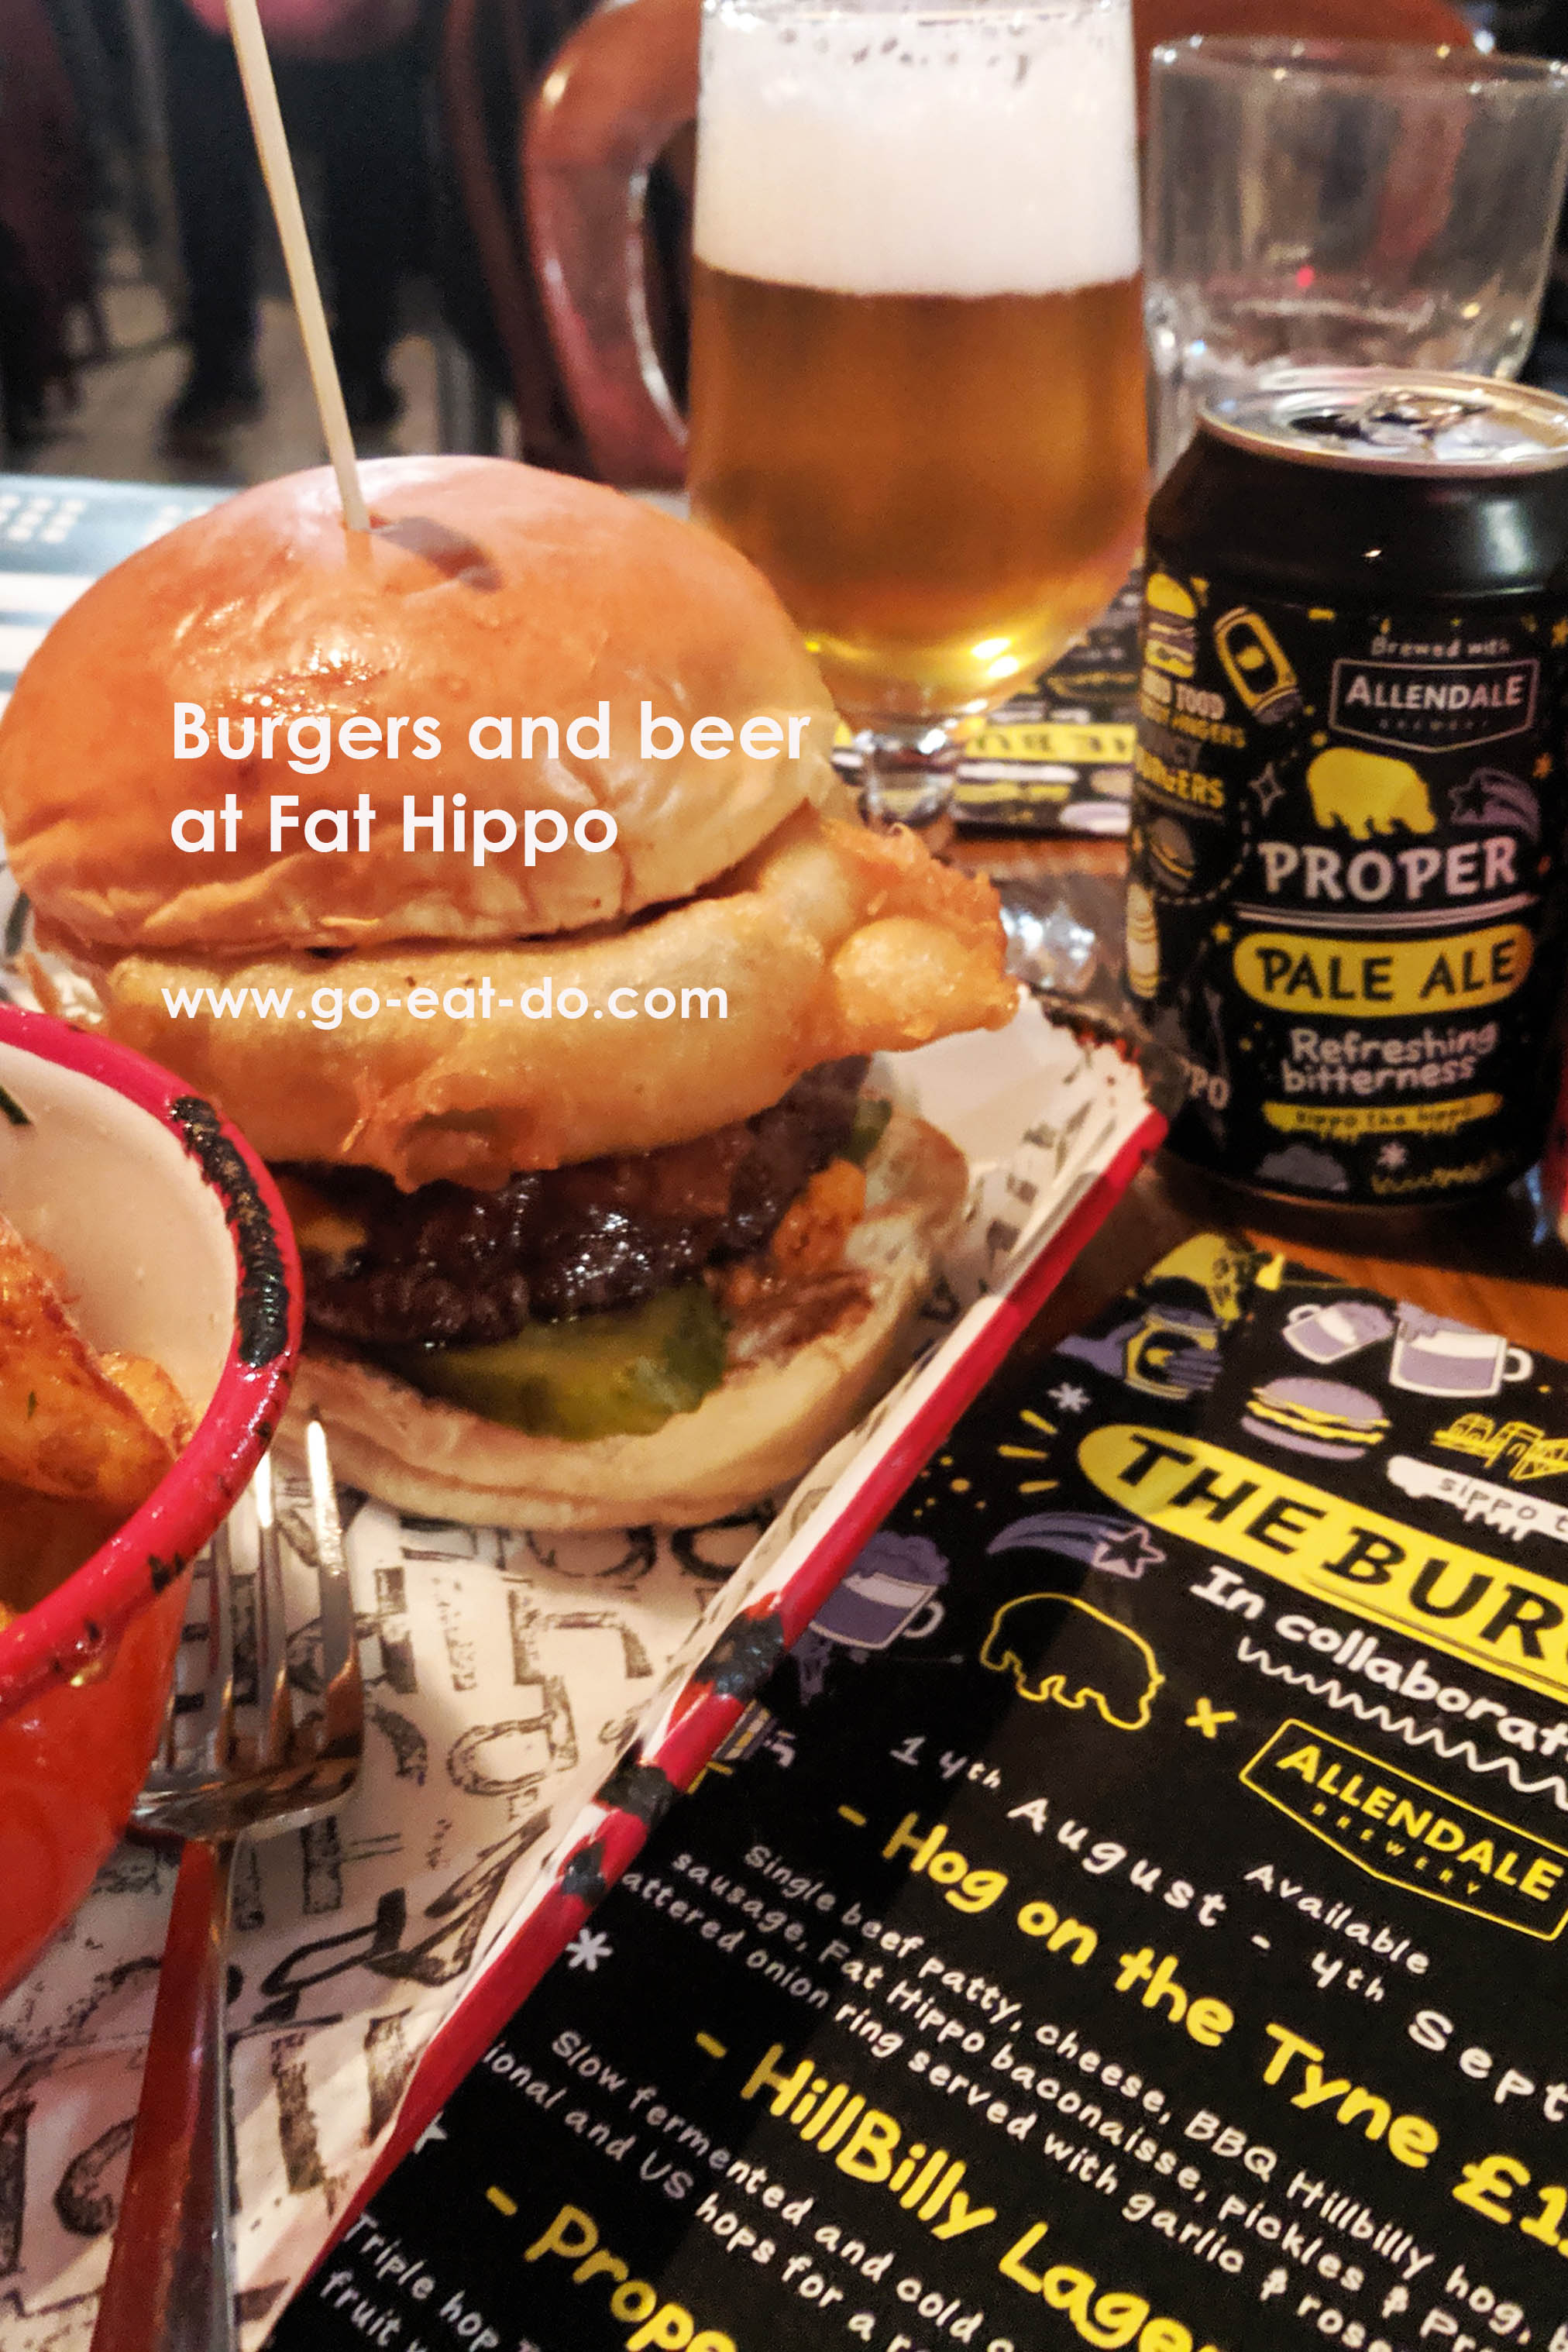 Use Pinterest? Pin this and return to read about an evening of burgers and beer at the Fat Hippo Underground in Newcastle.